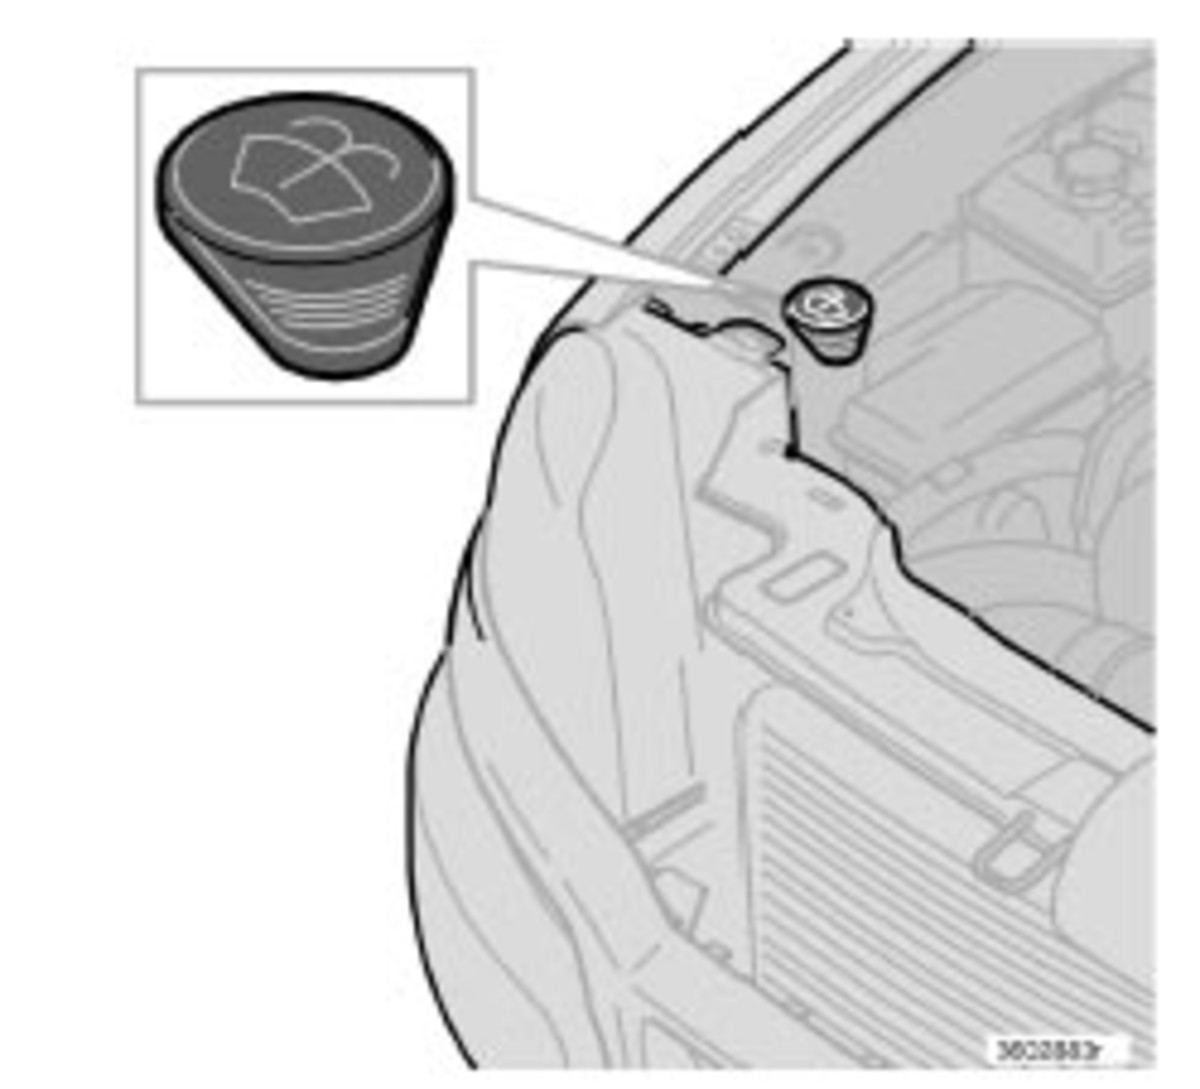 The is the icon for windshield wiper fluid. Don't pour radiator stop leak in here or you might have a big problem.